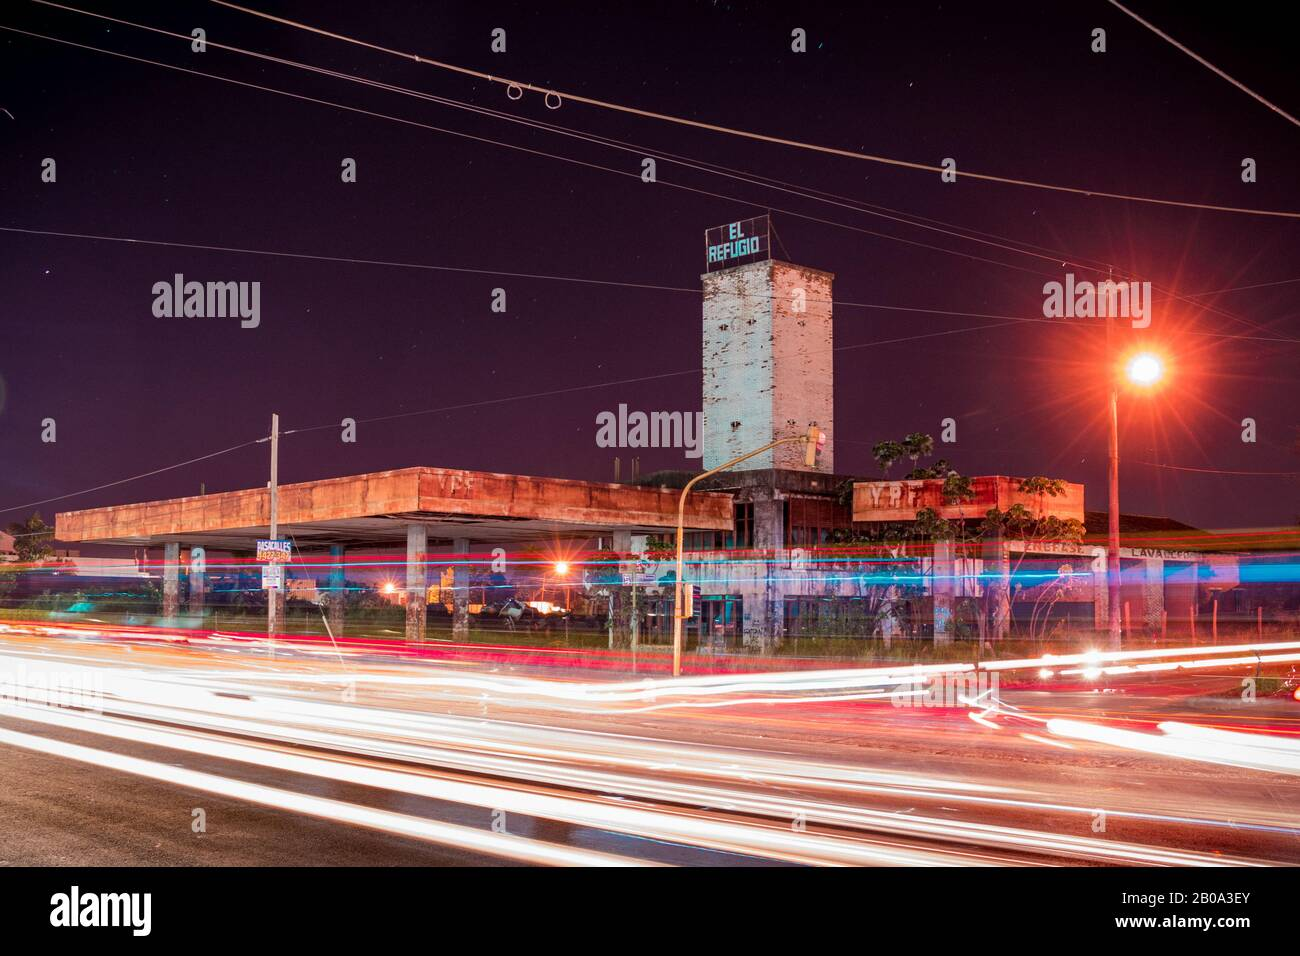 Abandoned Gas Station At Night Stock Photo Alamy